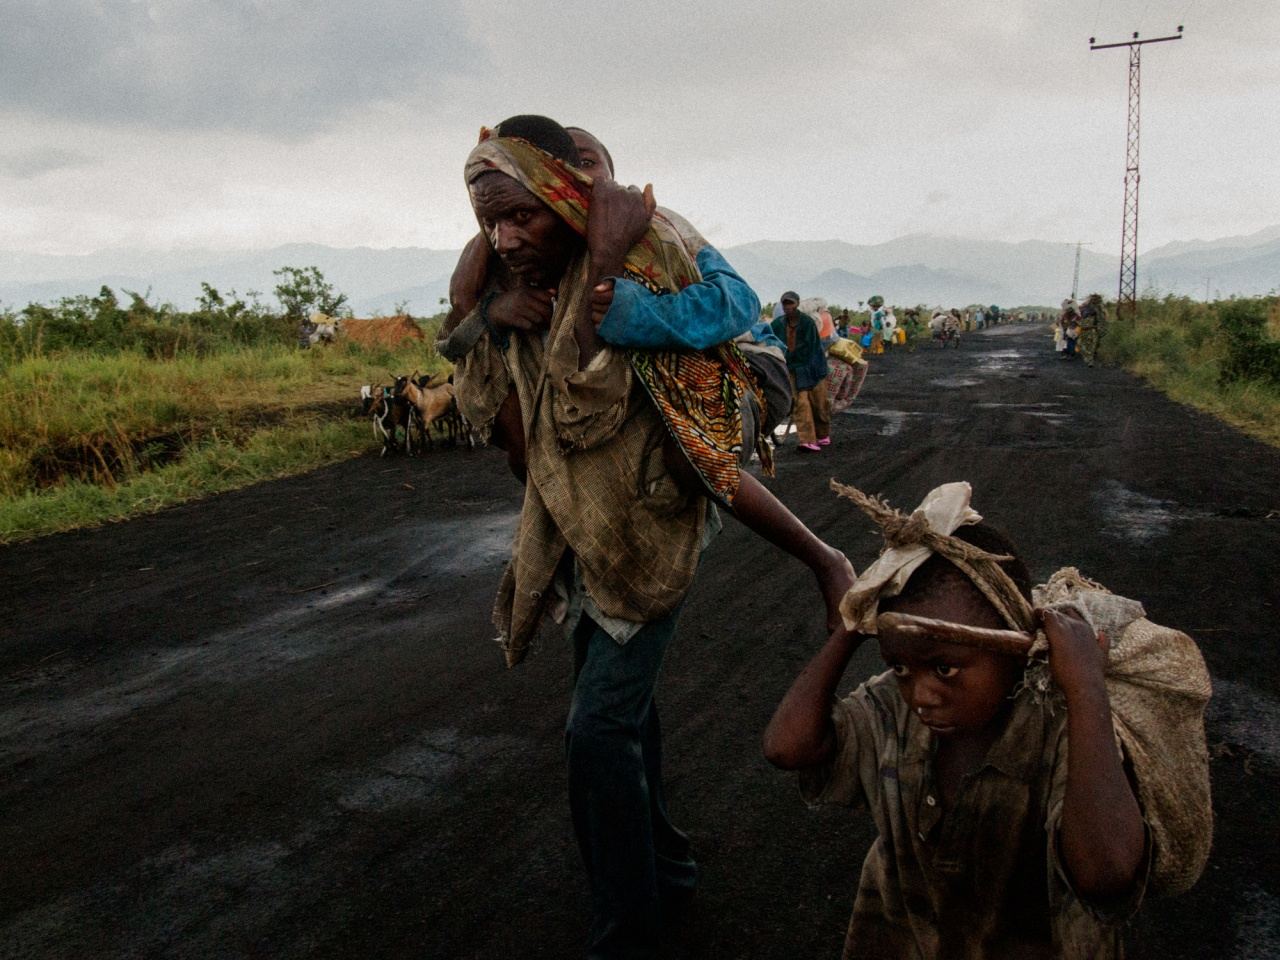 IDP's escaping conflict in North Kivu